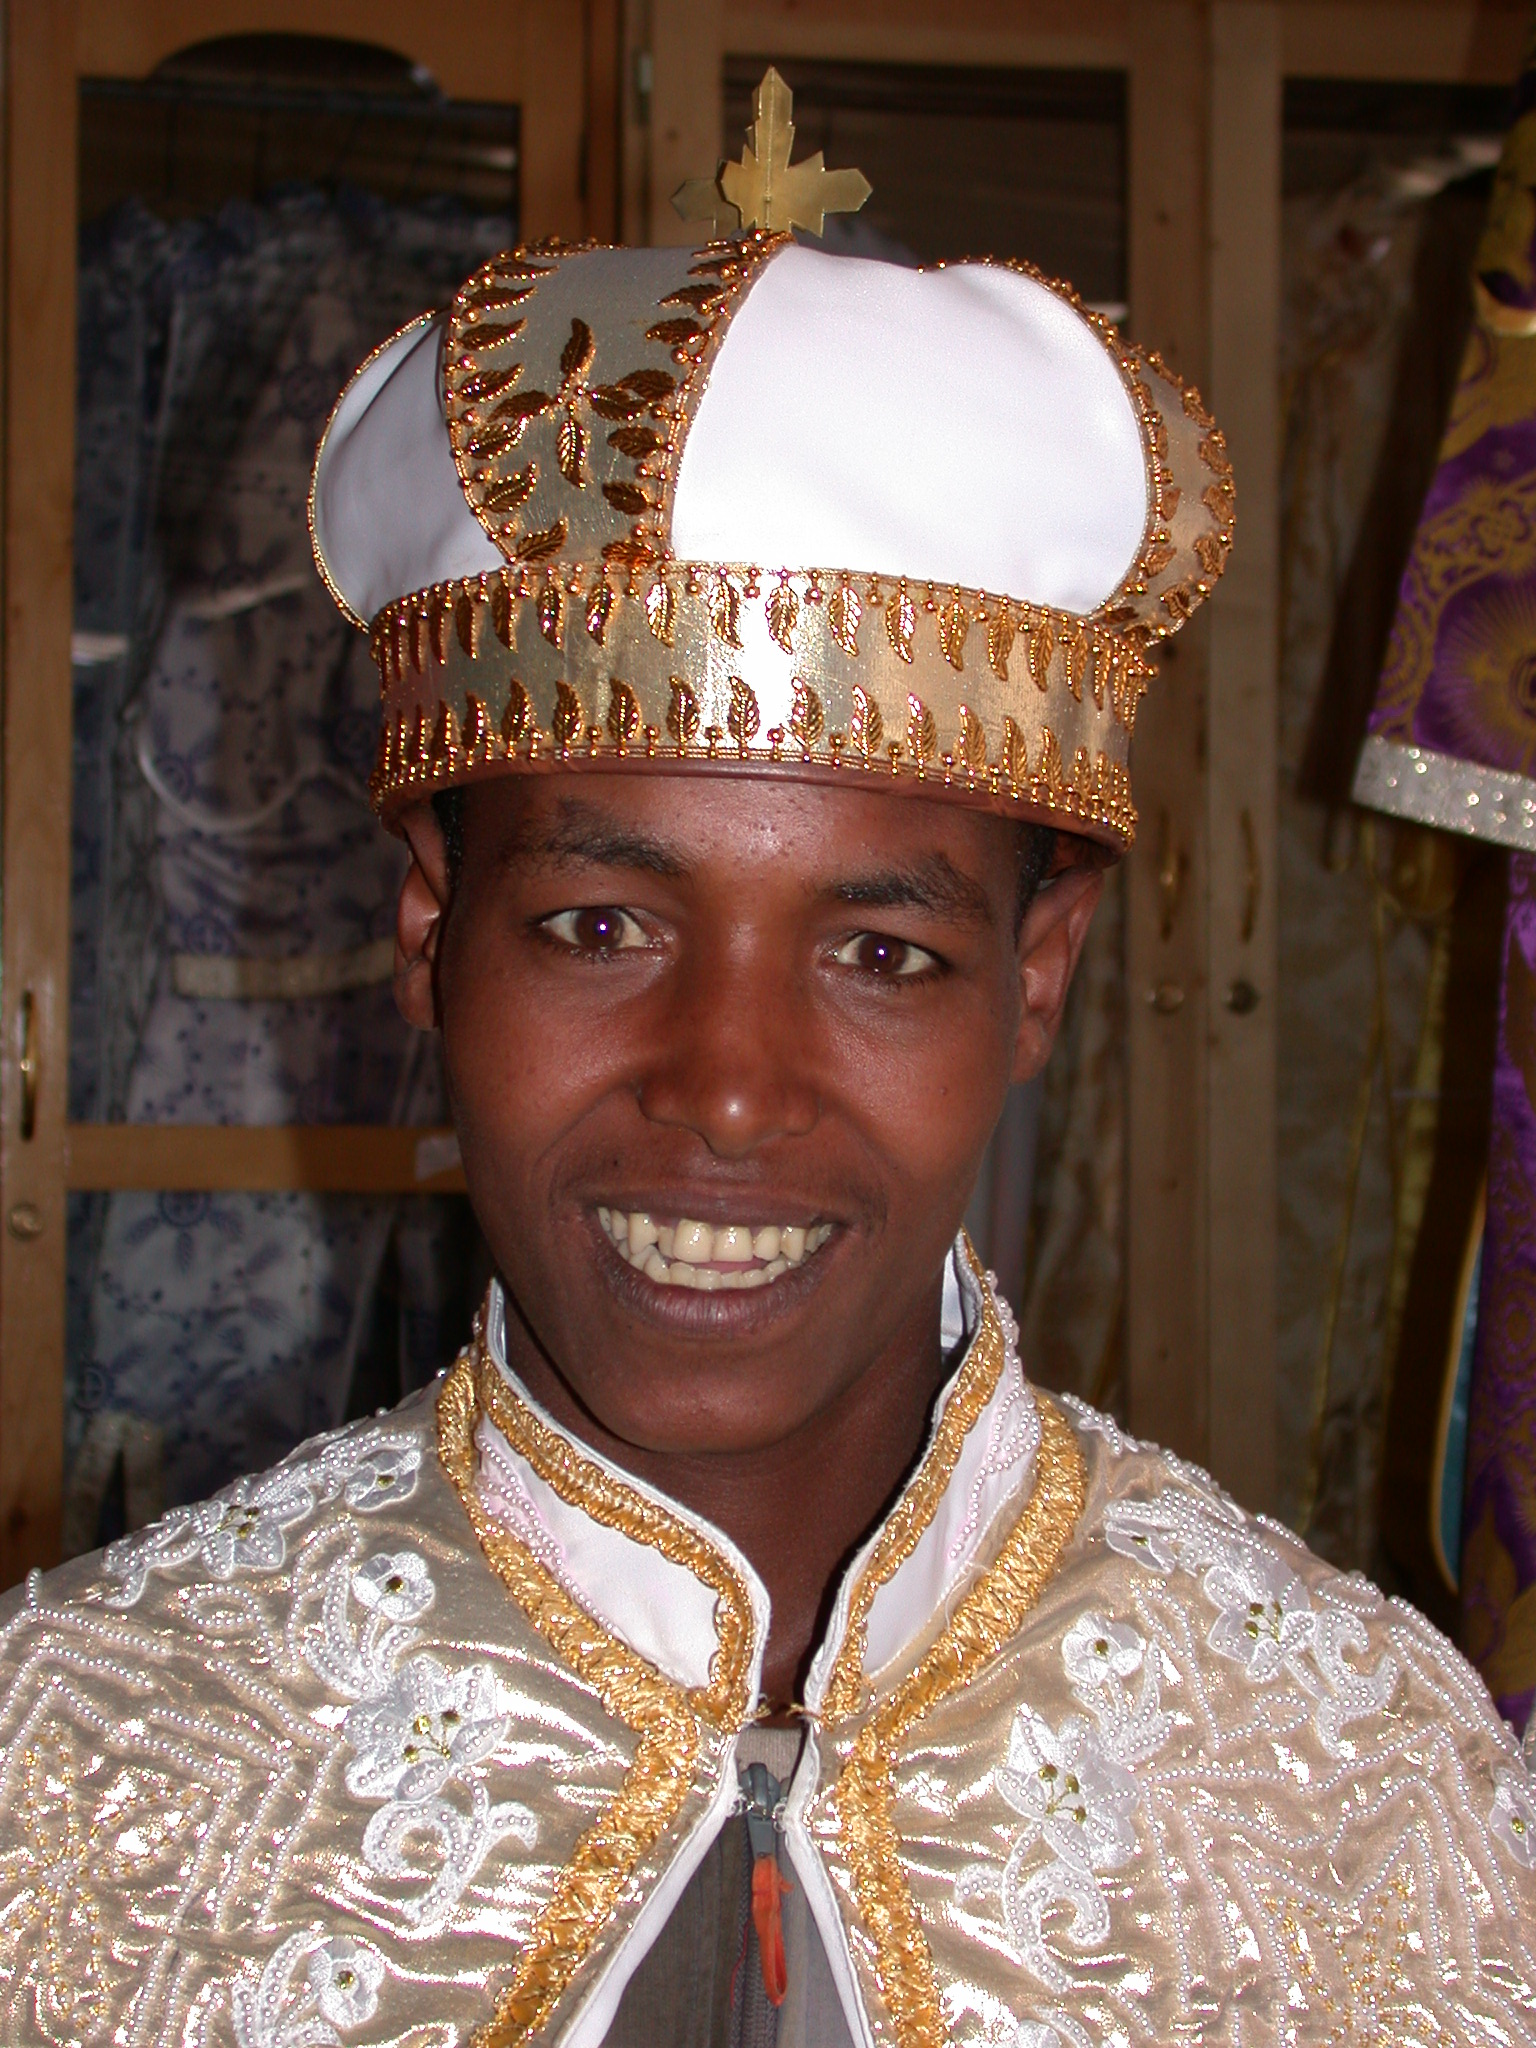 Street Guy in Wedding Gown at Church Shop, Addis Ababa, Ethiopia